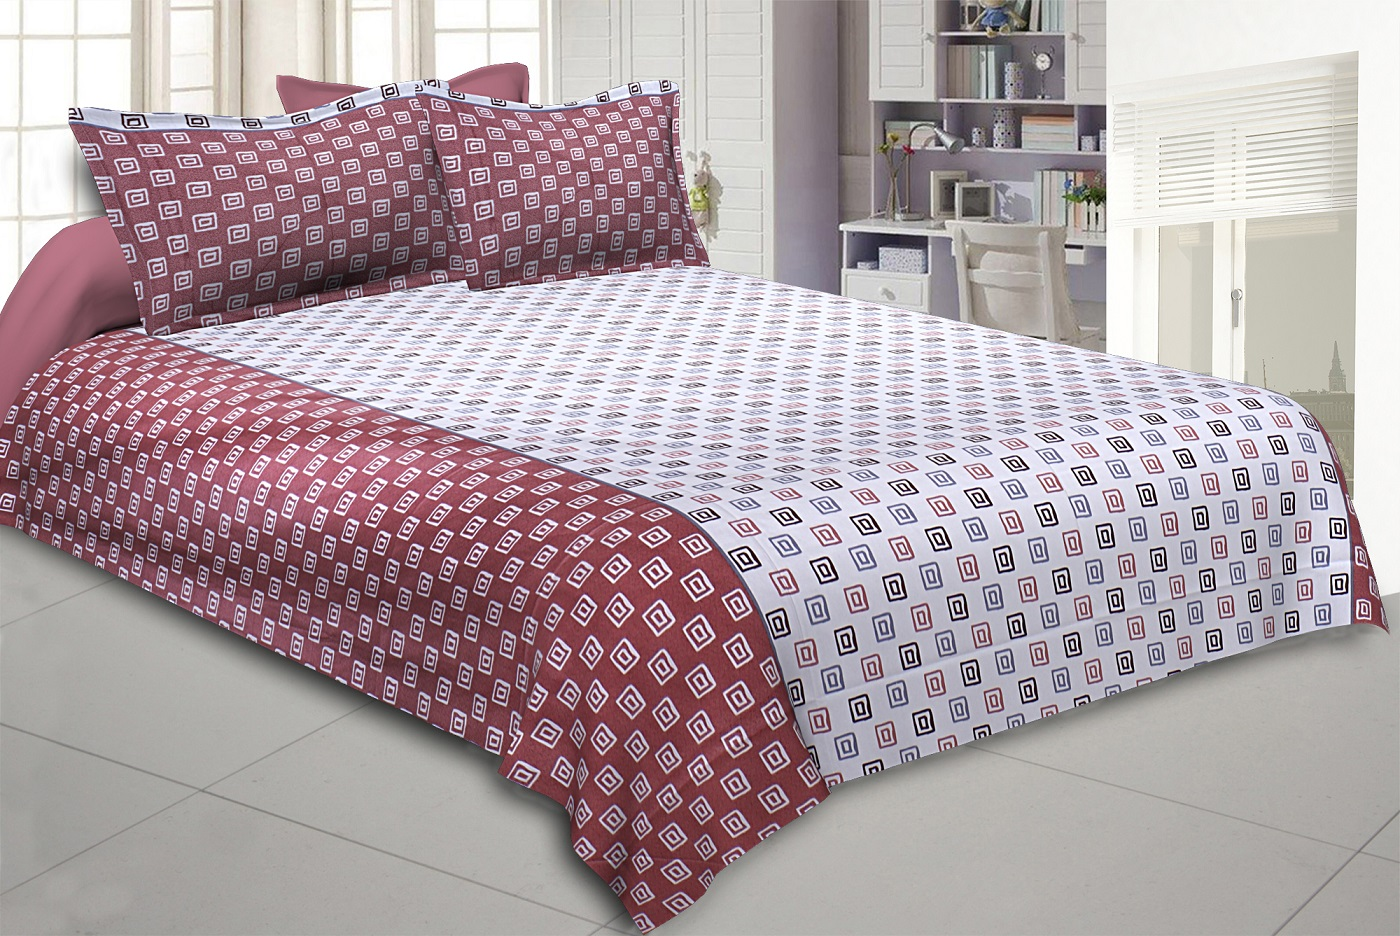 The Good Life Red Double BedSheet